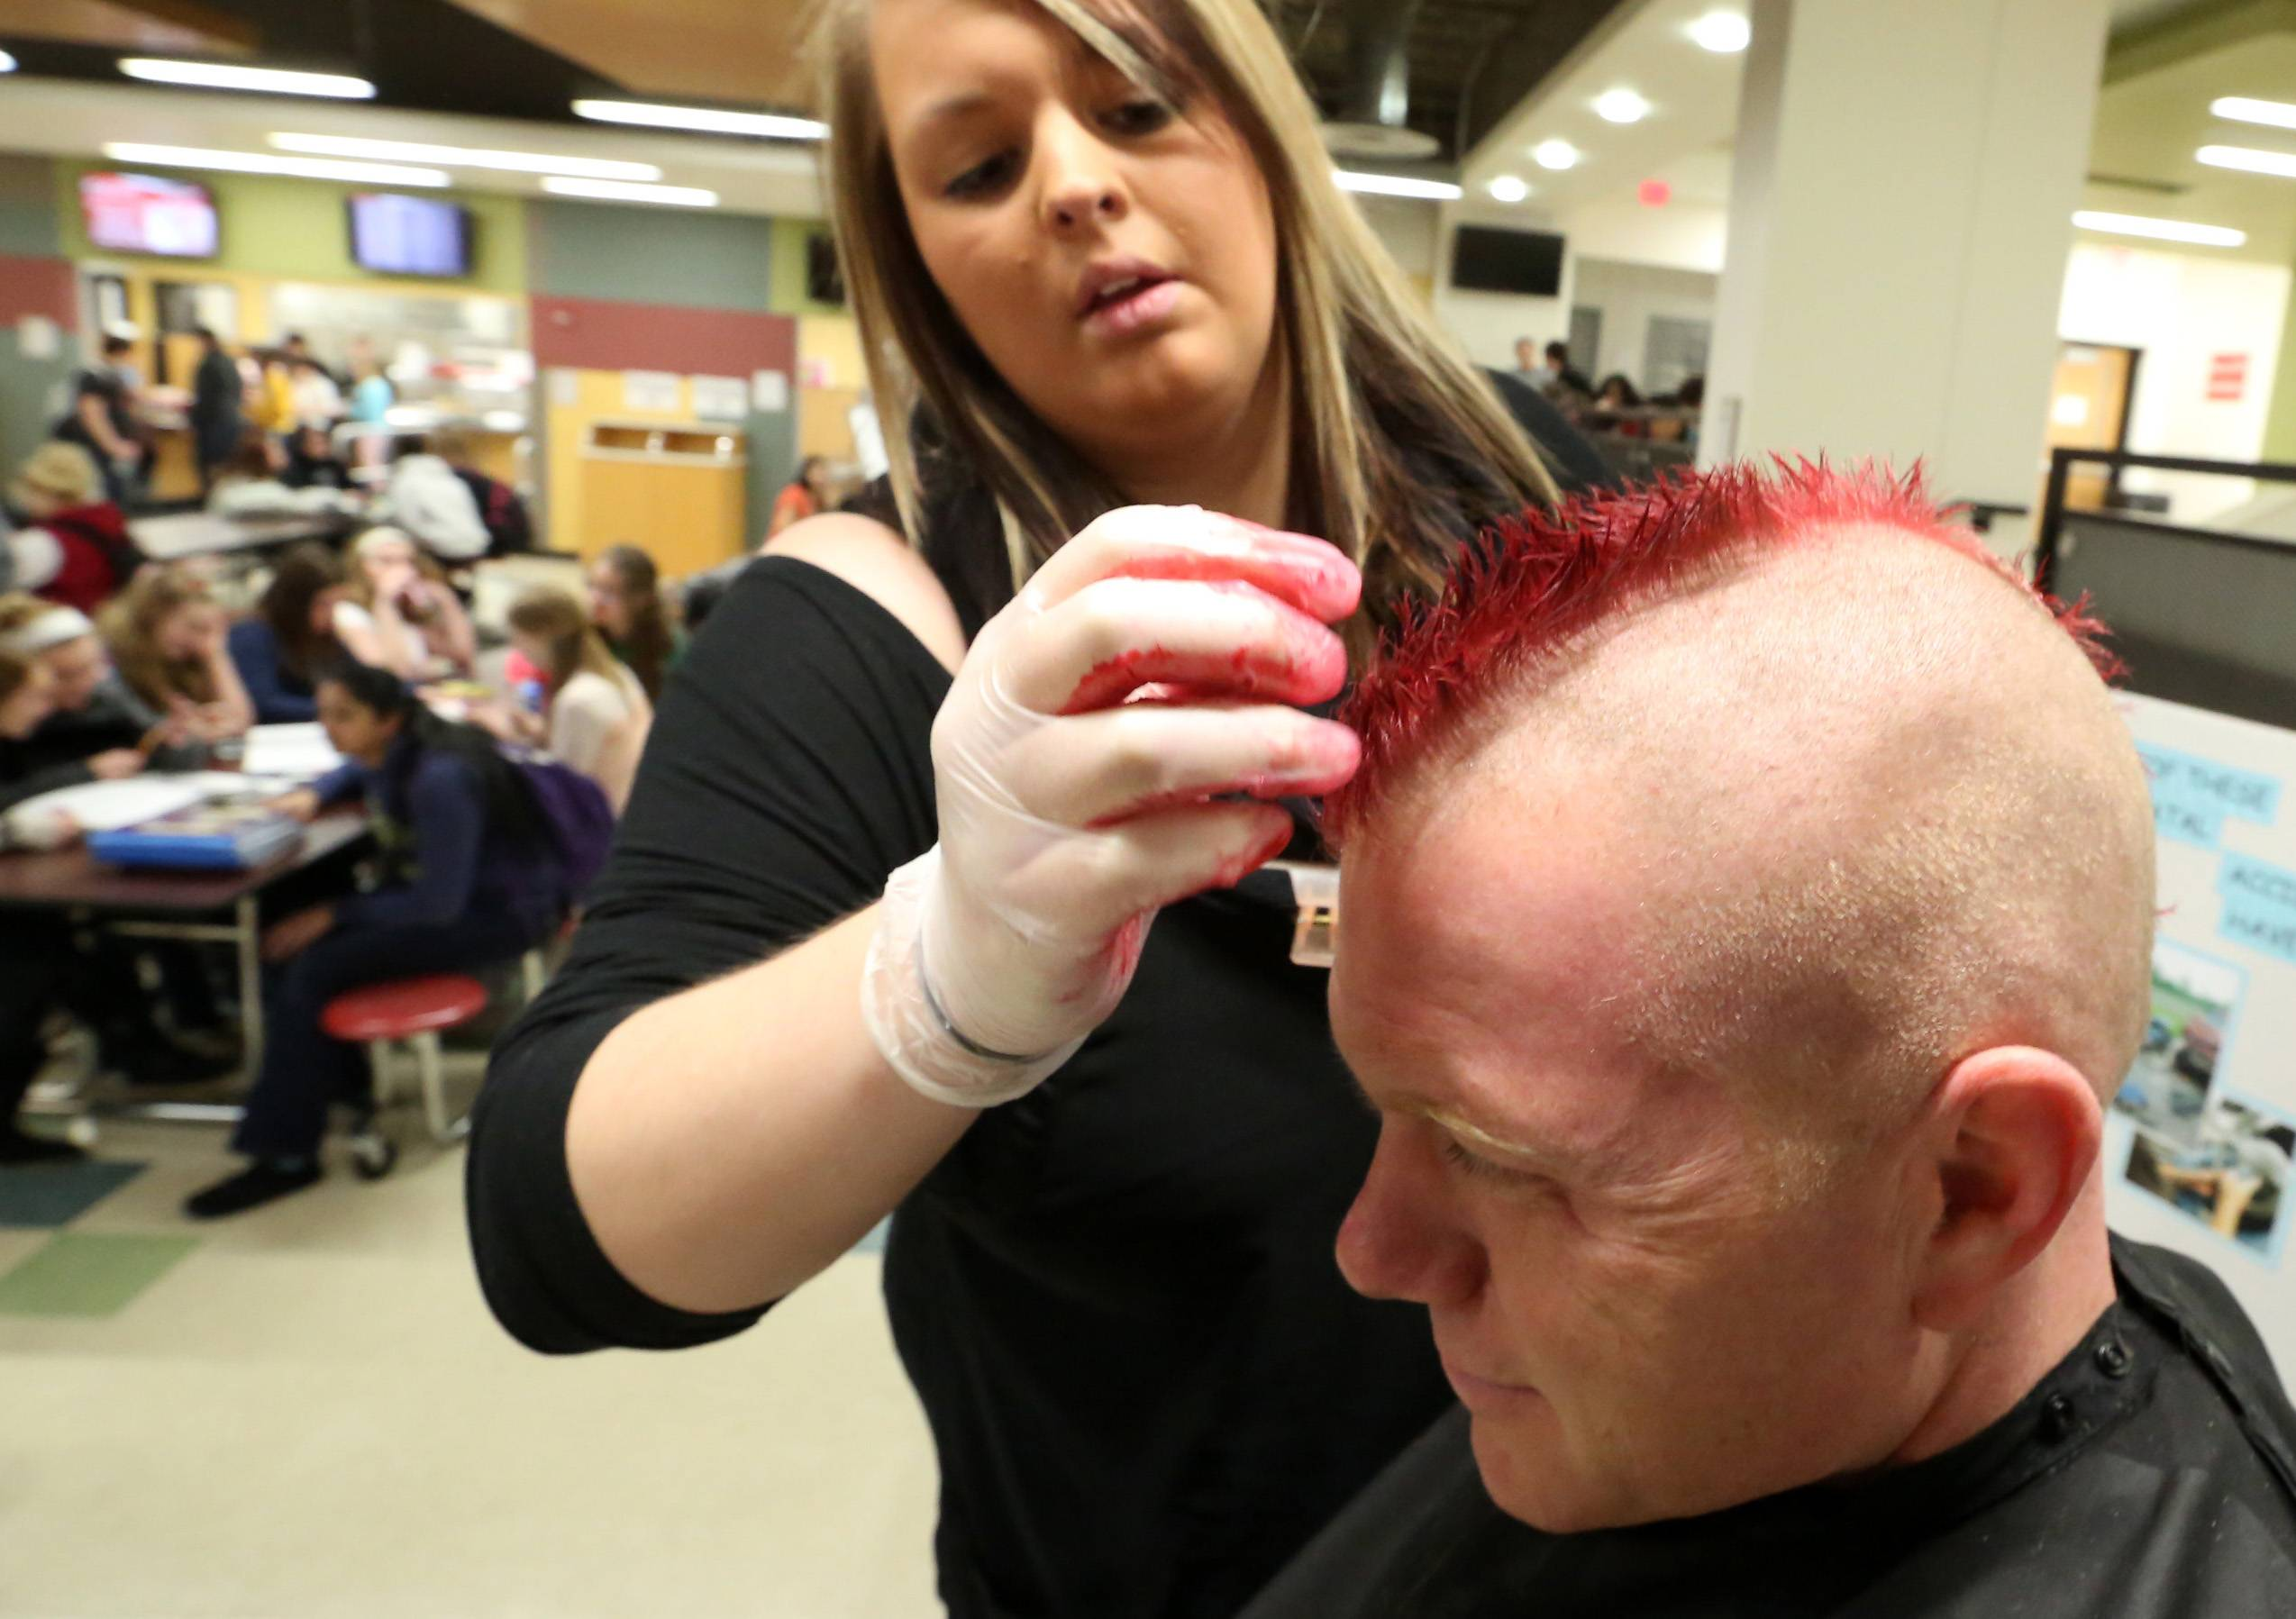 George LeClaire/gleclaire@dailyherald.comGrant Community High School's resource officer Russ Zander has his mohawk haircut died red by Kaitlyn Vinyard, a stylist with Grand Avenue Hair Club, on Friday in the school's lunch area in Fox Lake.